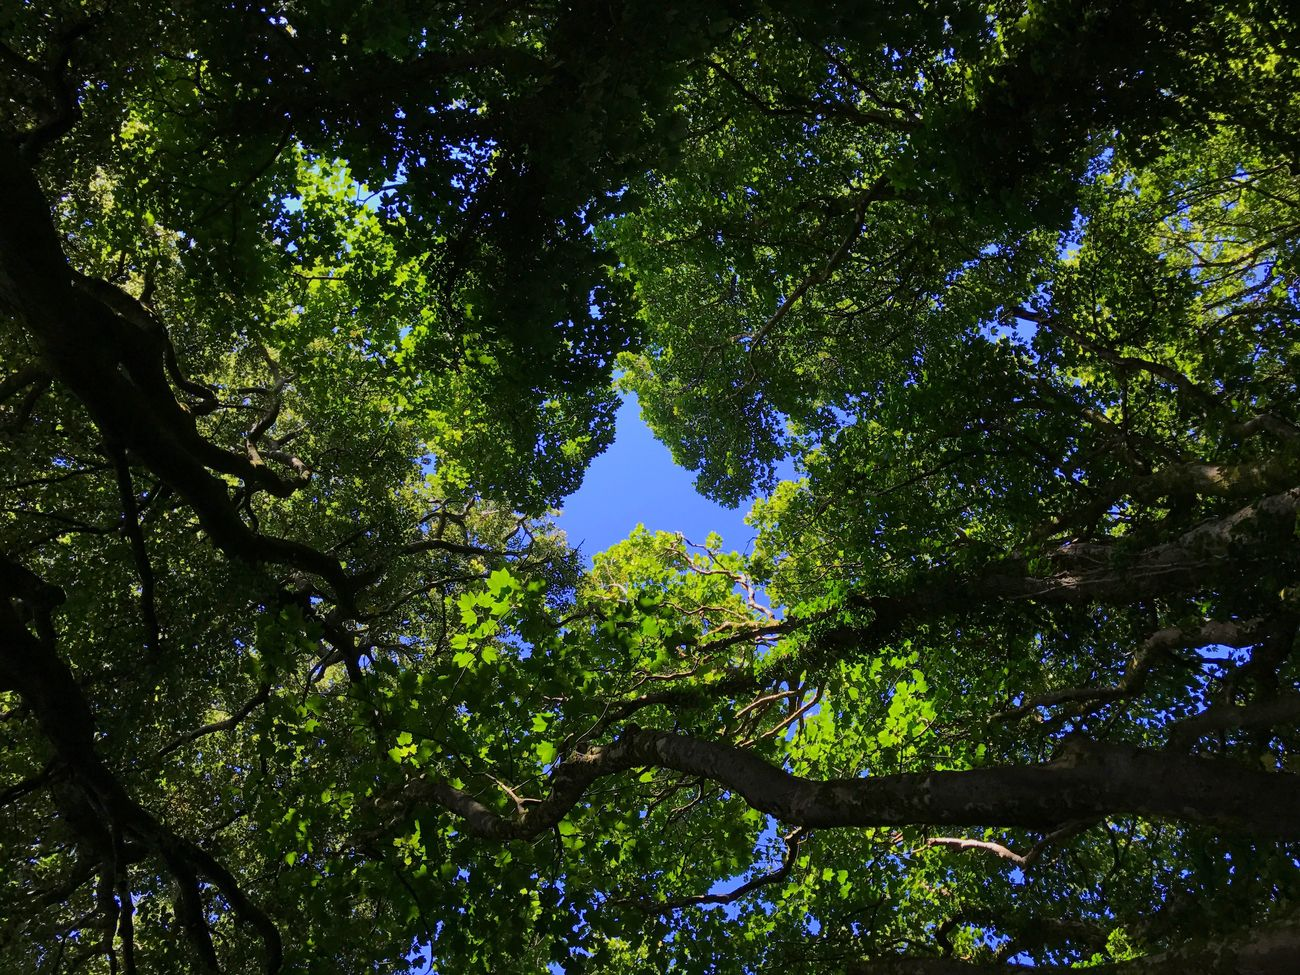 Tree canopy overhead Tree Nature Low Angle View Tranquility Beauty In Nature Forest No People Green Color Scenics Day Branch Growth Outdoors Sky Courtmacsherry Wild Atlantic Way County Cork Ireland